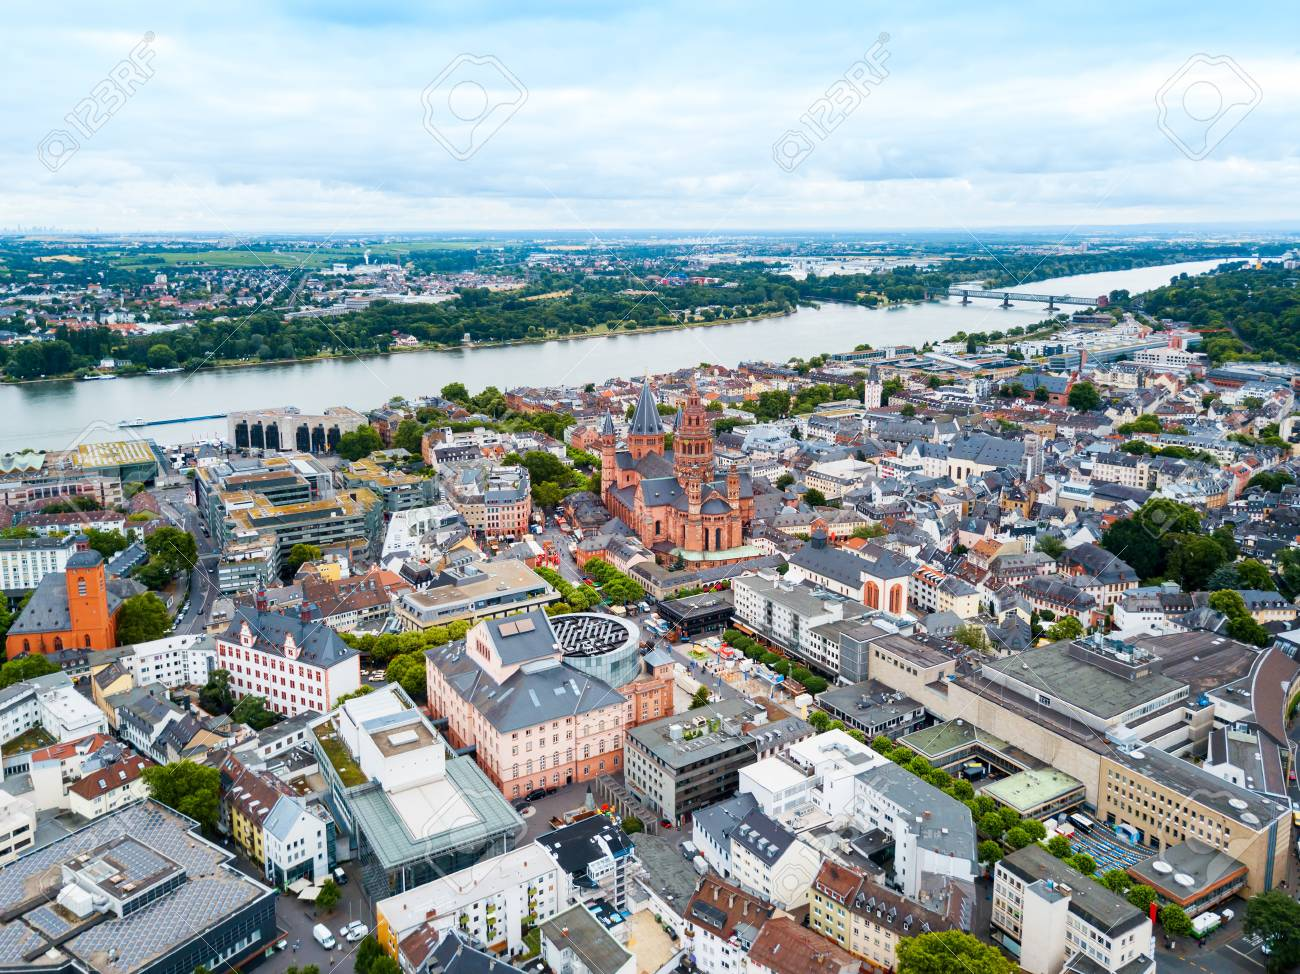 Mainz Cathedral Aerial Panoramic View, Located At The Market Square Of Mainz  City In Germany Stock Photo, Picture And Royalty Free Image. Image  112239366.